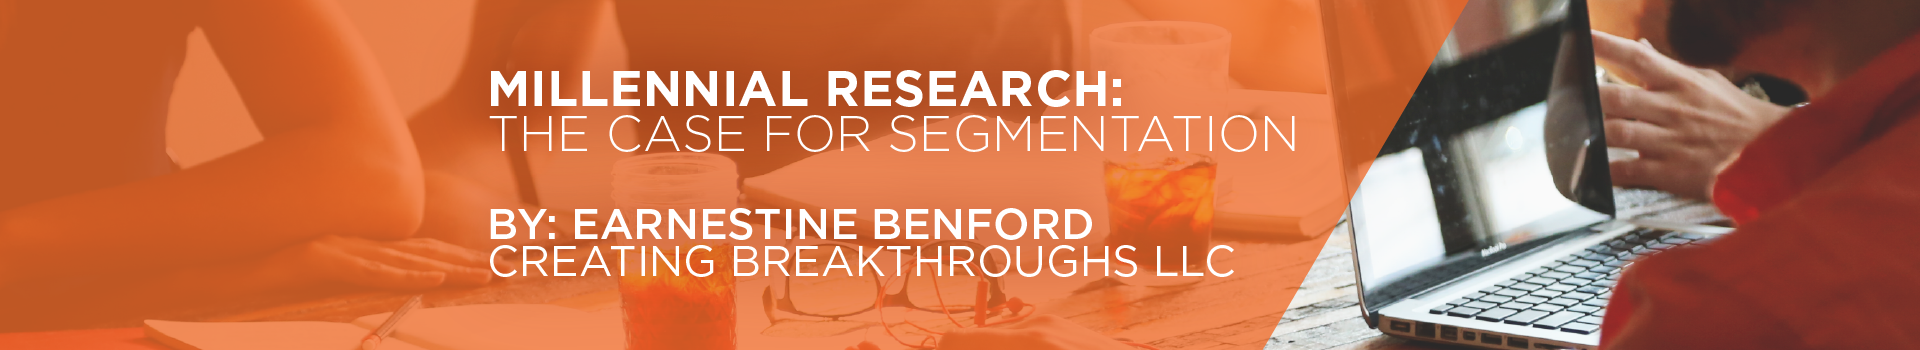 Millennial Research: The Case For Segmentation E-book